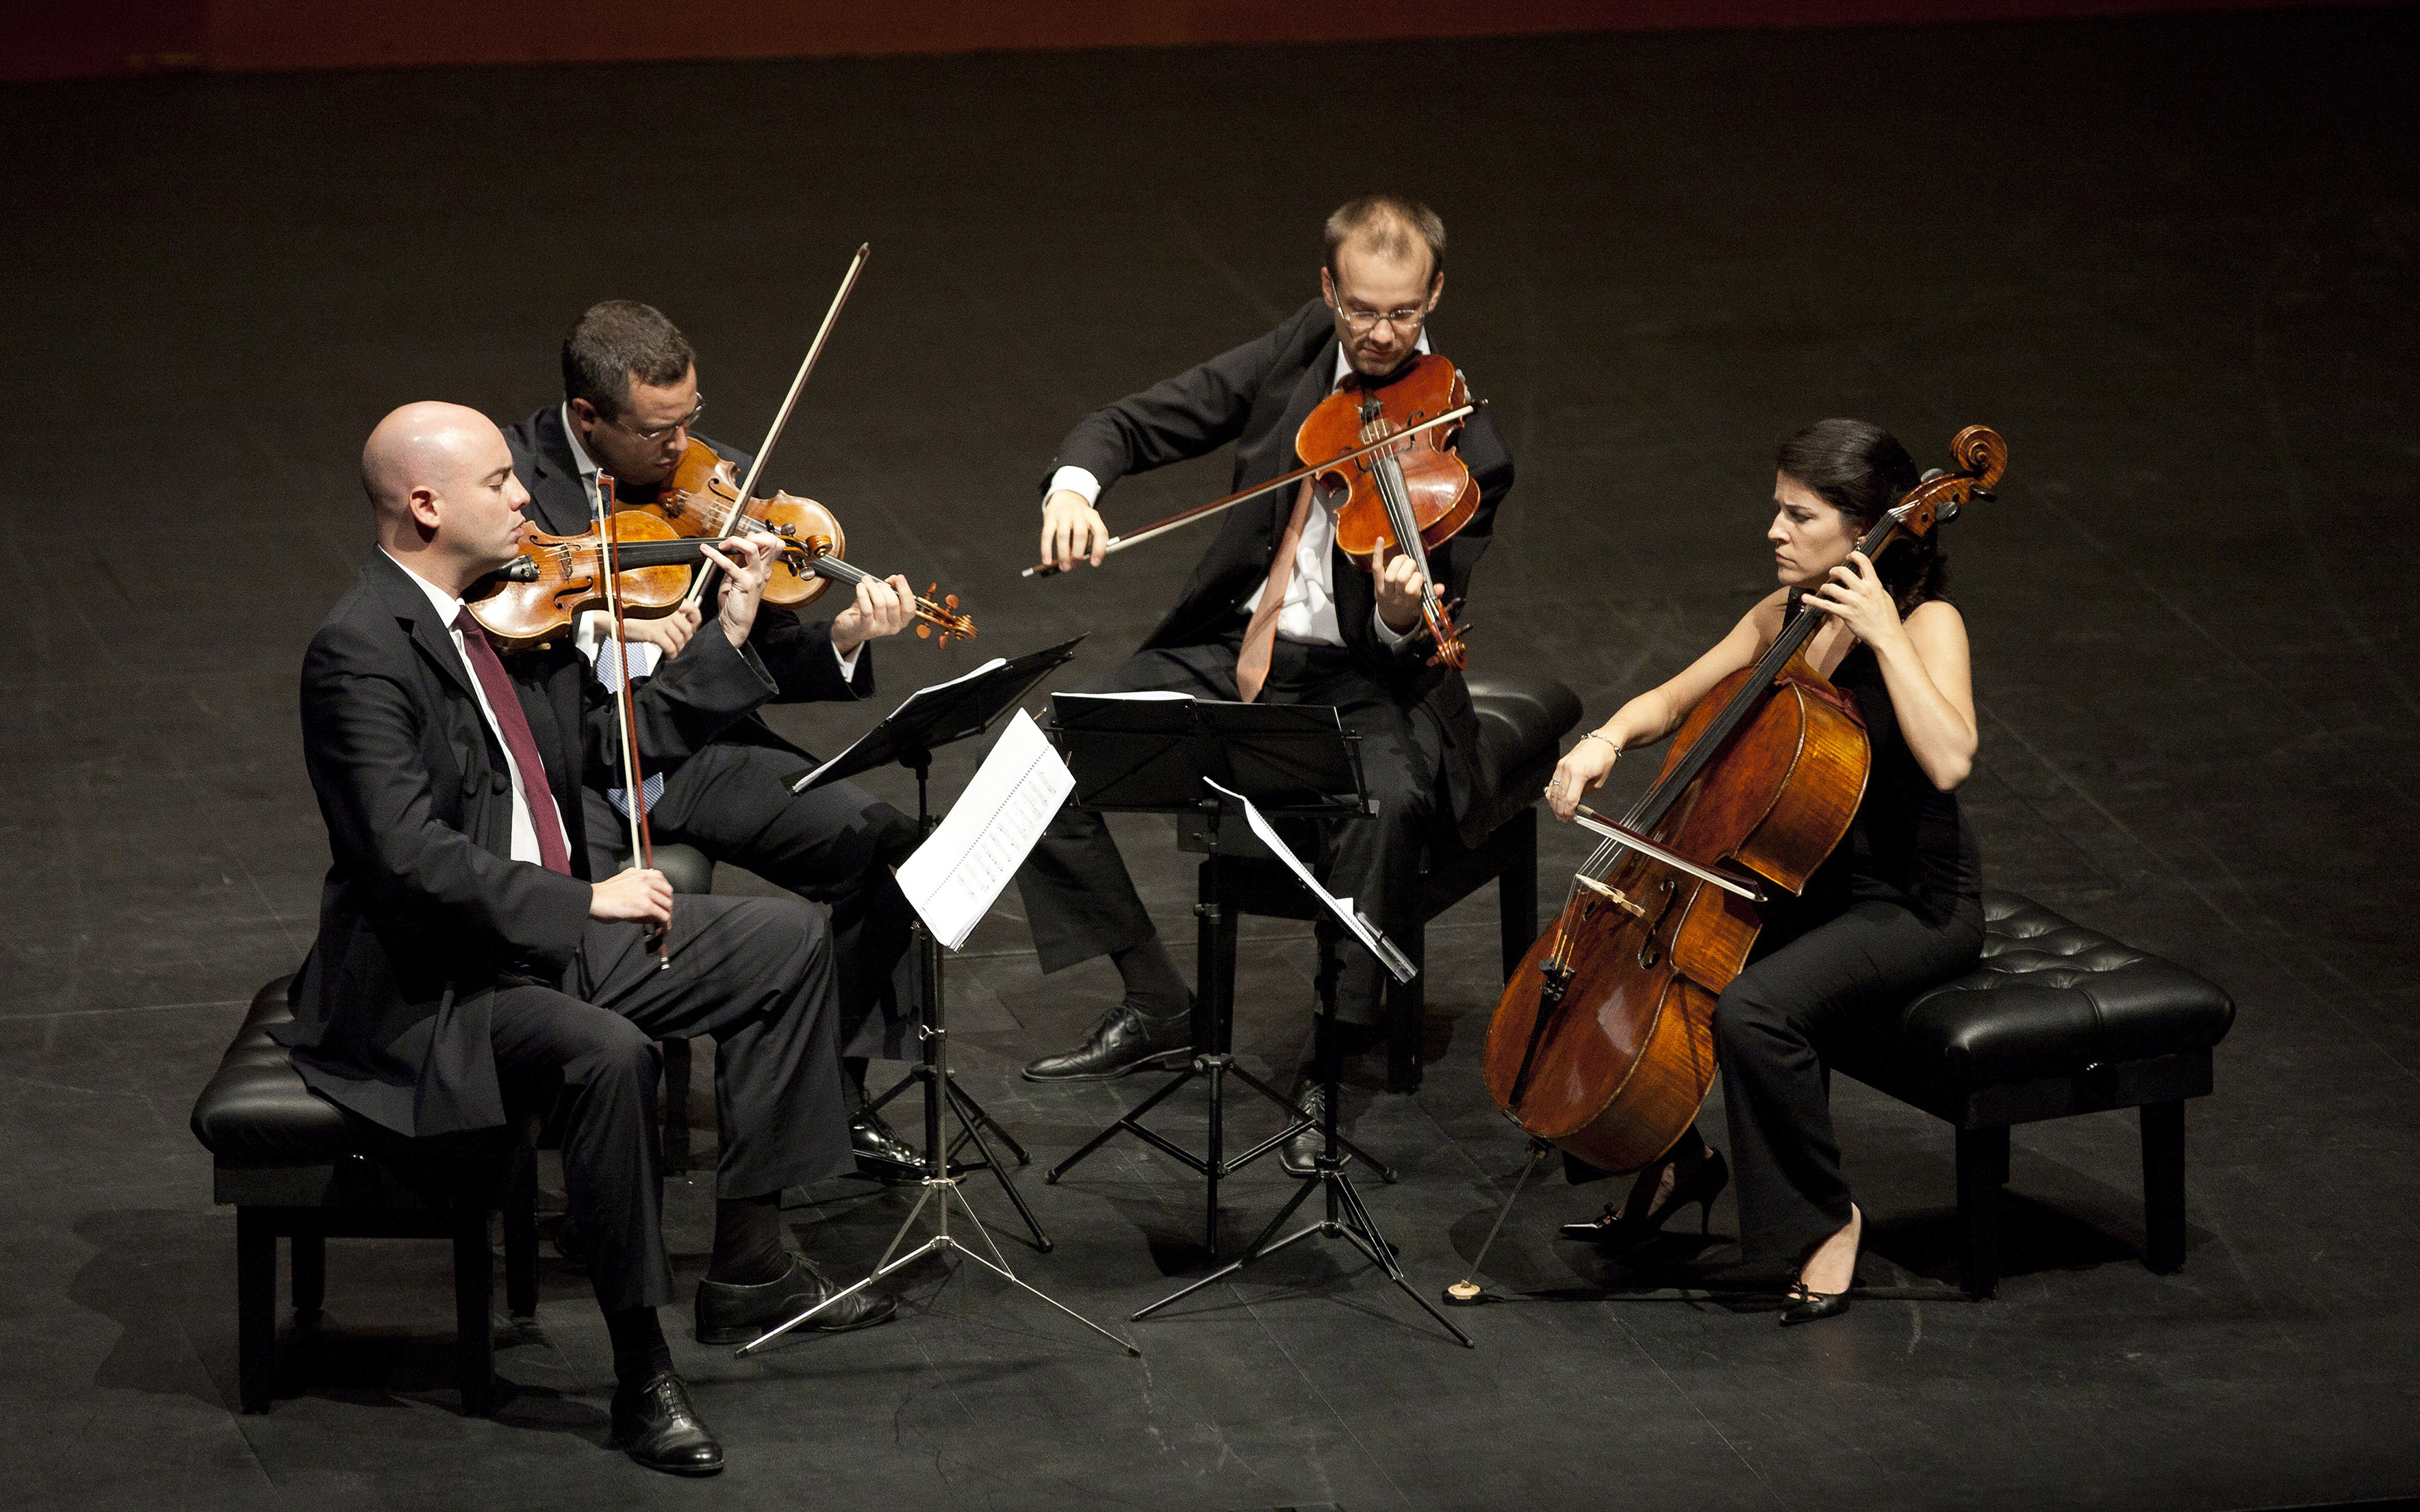 The Spanish string quartet Cuarteto Quiroga in performance, photographed by Íñigo Ibáñez/Quincena Musical.